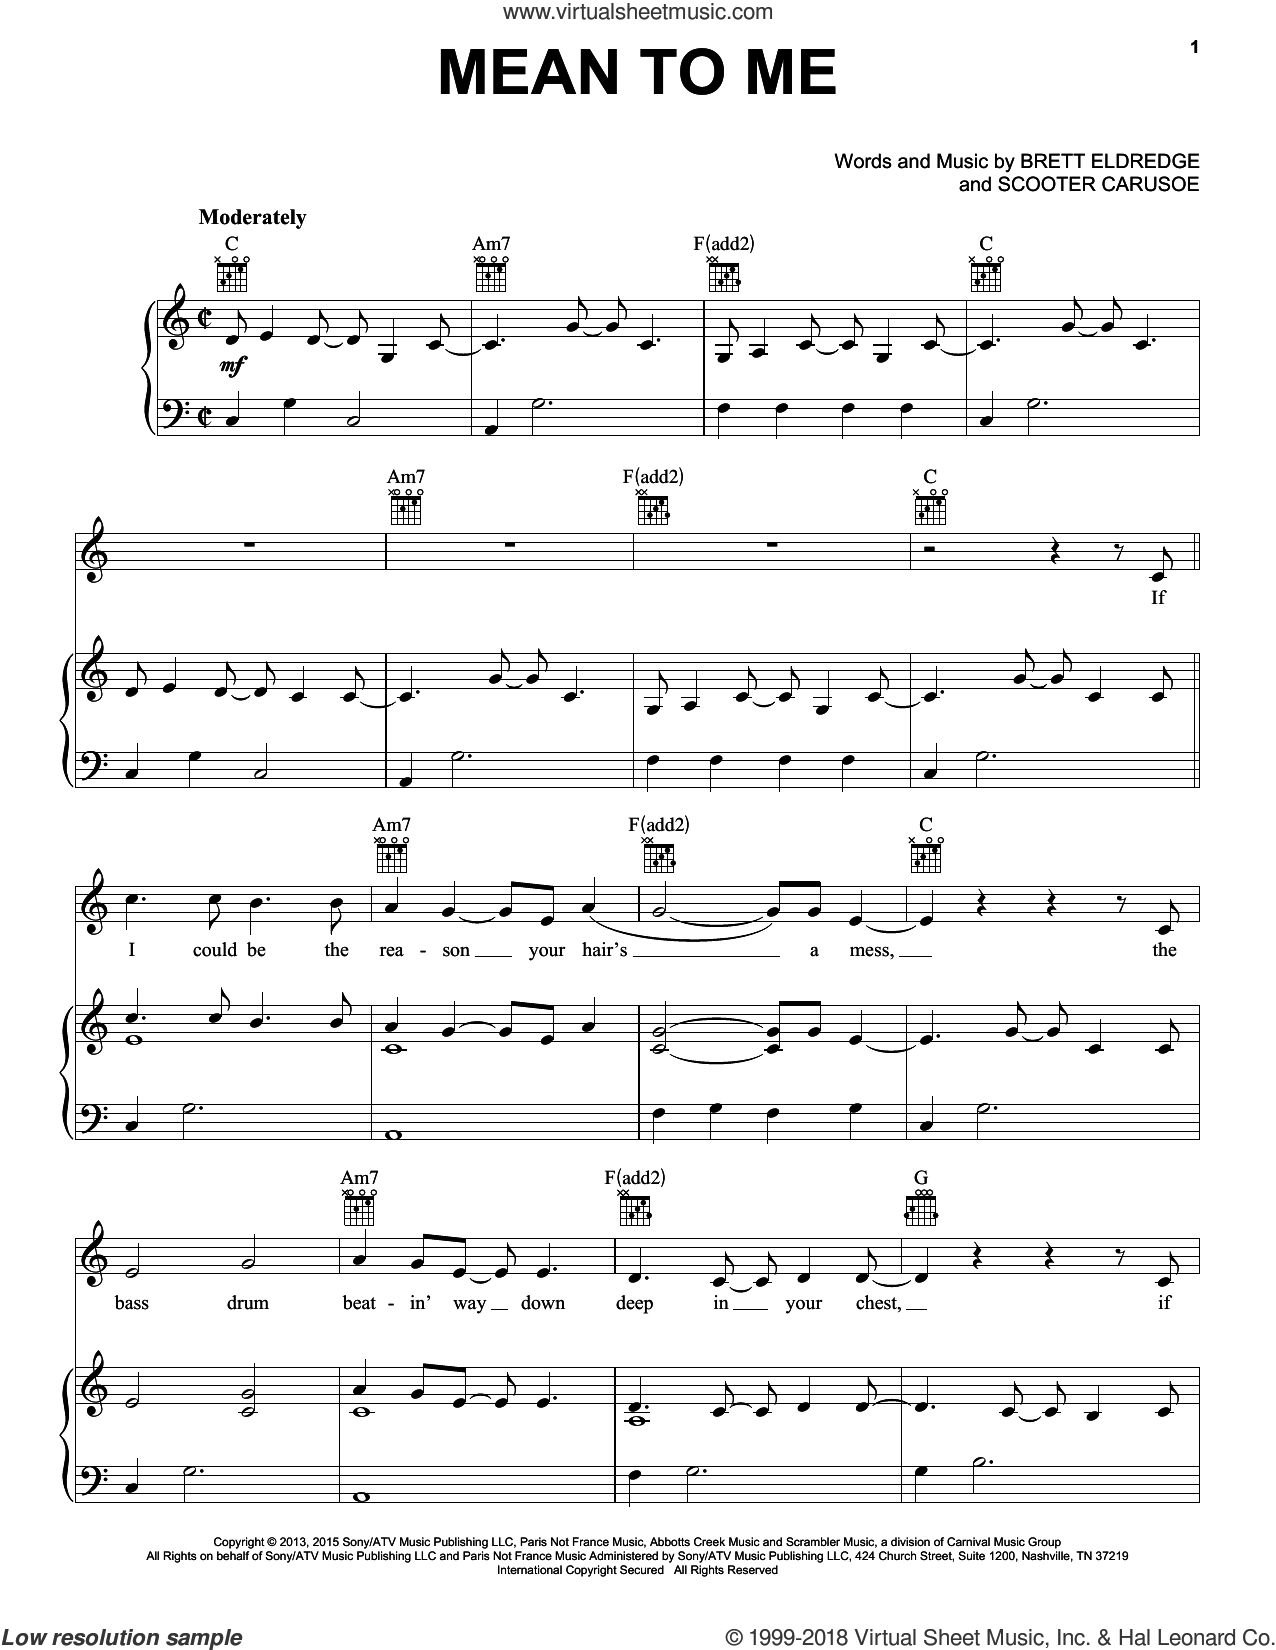 Mean To Me sheet music for voice, piano or guitar by Scooter Carusoe. Score Image Preview.